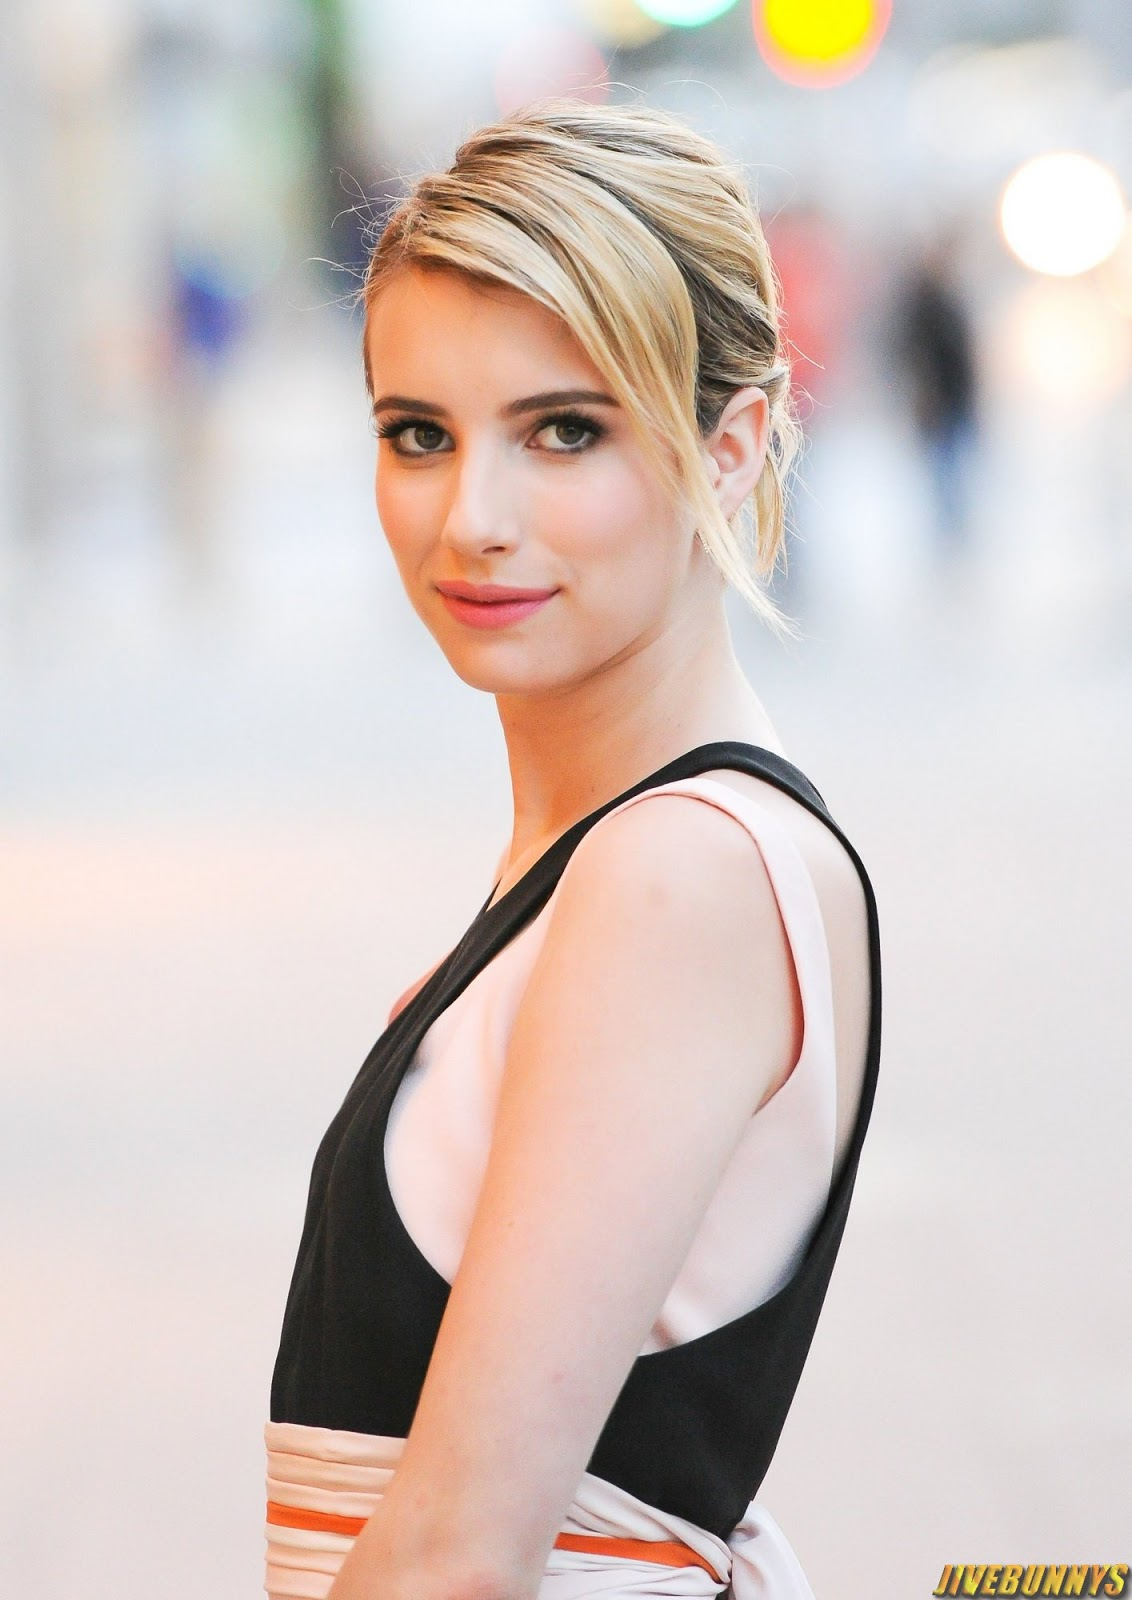 Jivebunnys Female Celebrity Picture Gallery Emma Roberts Hot Photos Gallery 6